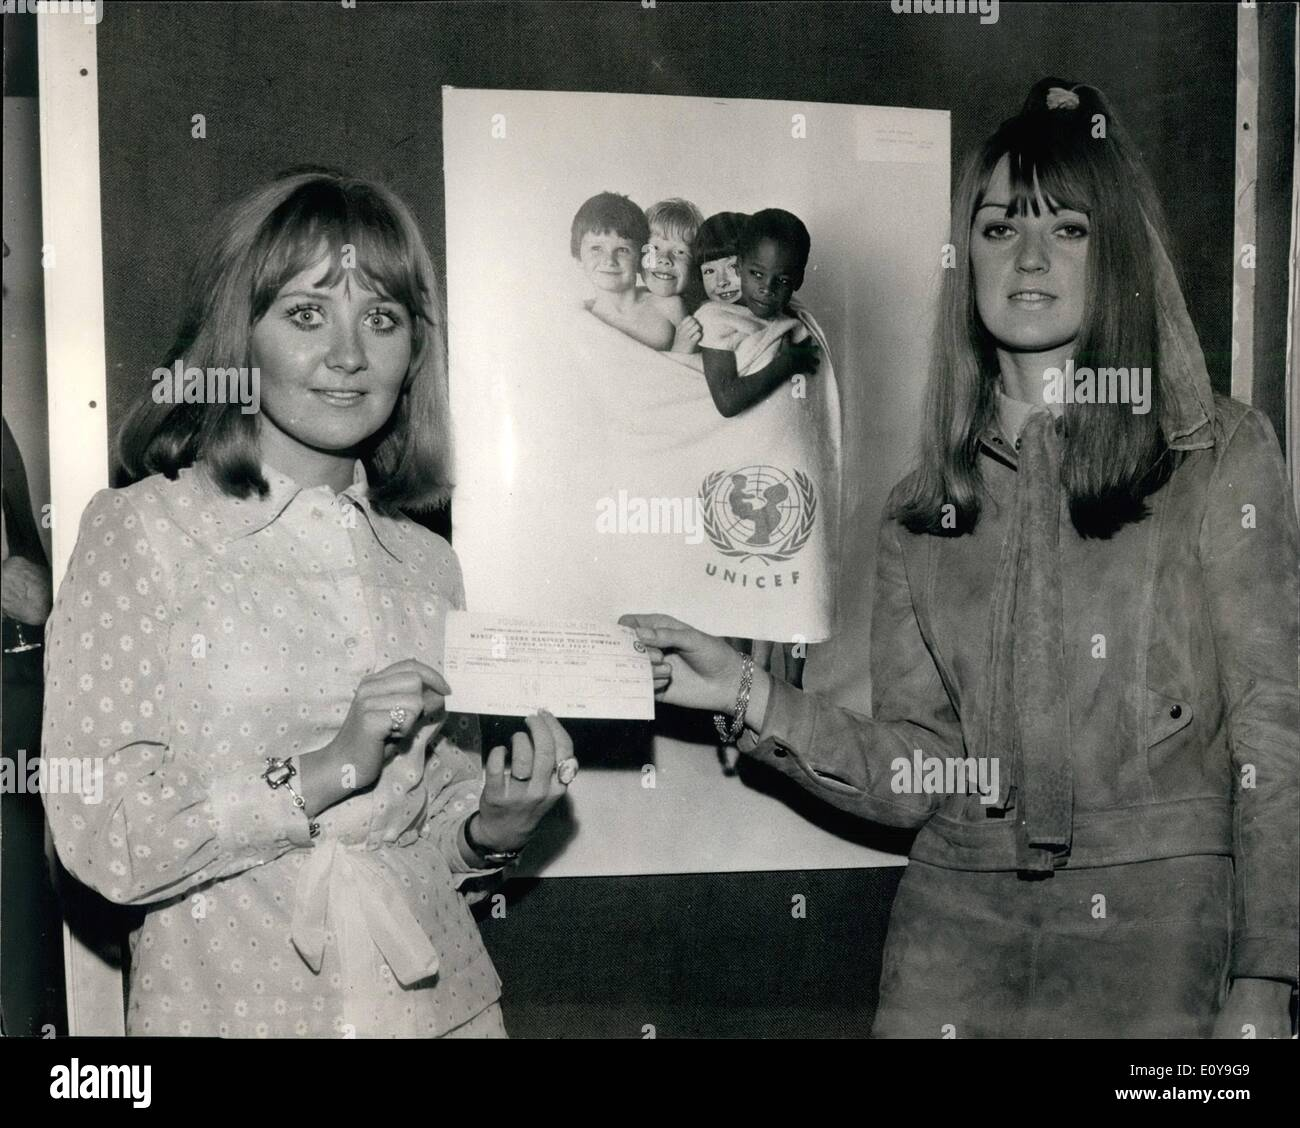 Jun. 06, 1969 - 20-Year-Old Art Student Wins United Nations Children's Fund Poster Design Award: 20-year-old Carol Ann Venables, daughter of a carpenter of Little Heath Croft, Castle Bromwich, Birmingham, case first in the British section of the Unicef International Poster Award competition. Miss Venables received a 350 travel scholarship which was presented to her by Pop singer Lulu at a reception at New Zealand House this evening. Photo shows Carol Ann Venables receives her 350 travel scholarship cheque from Pop singer Lulu (left) at New Zealand House, London, this evening - Stock Image